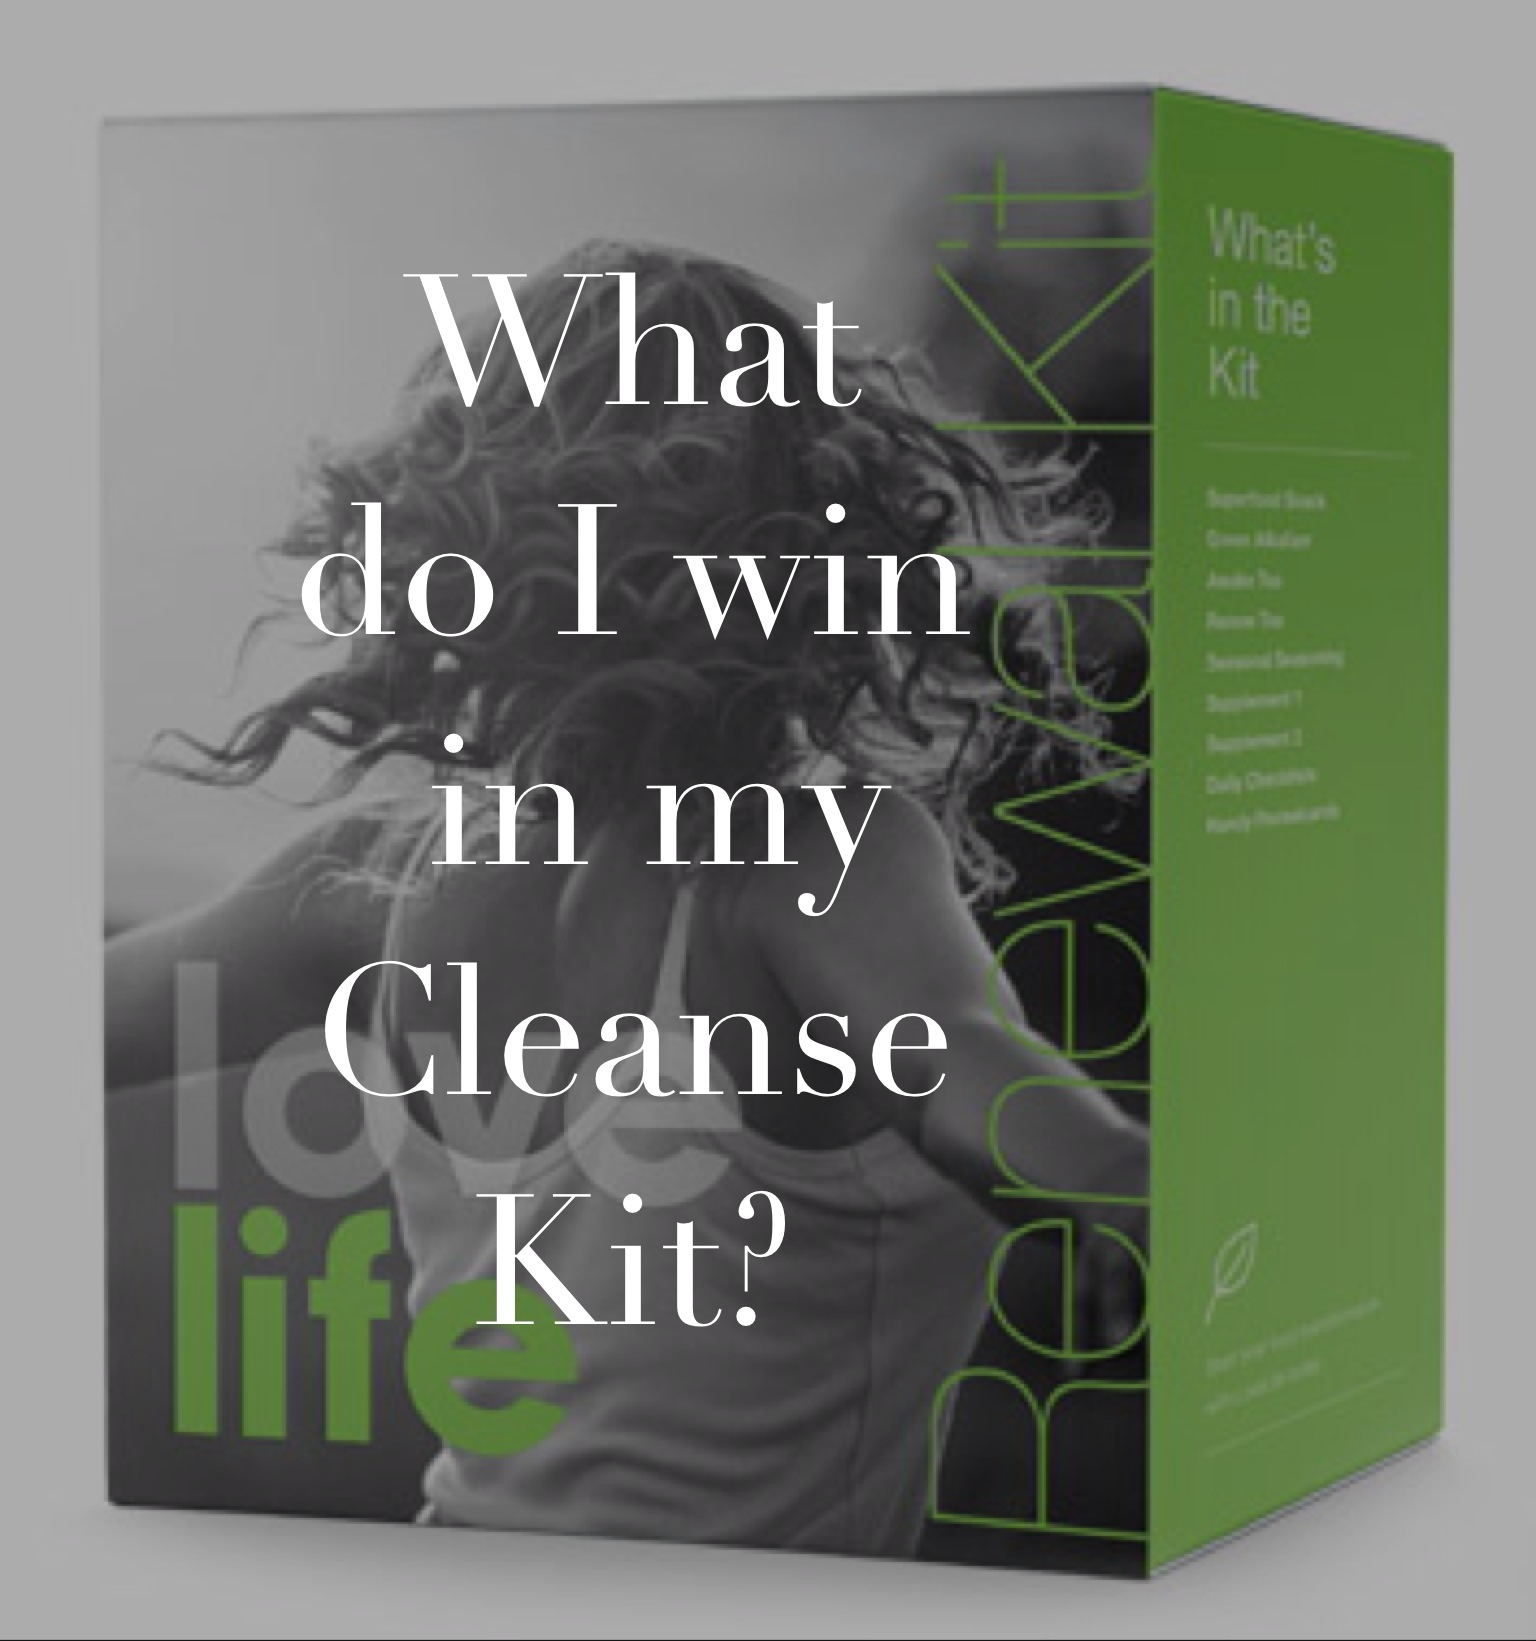 lovelife cleanse kit question